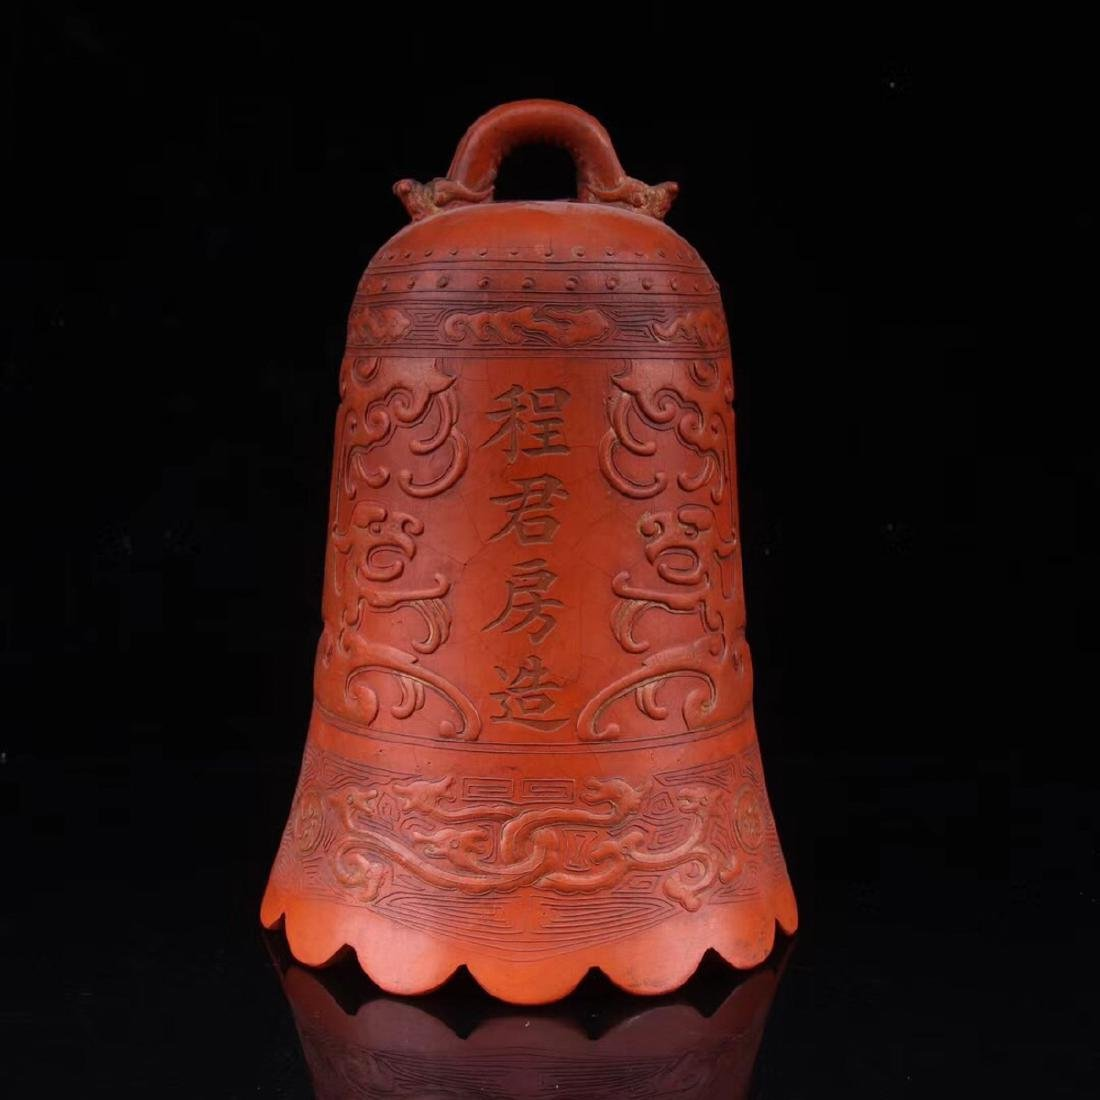 A ZHUSHA CARVED BELL SHAPED DECORATION